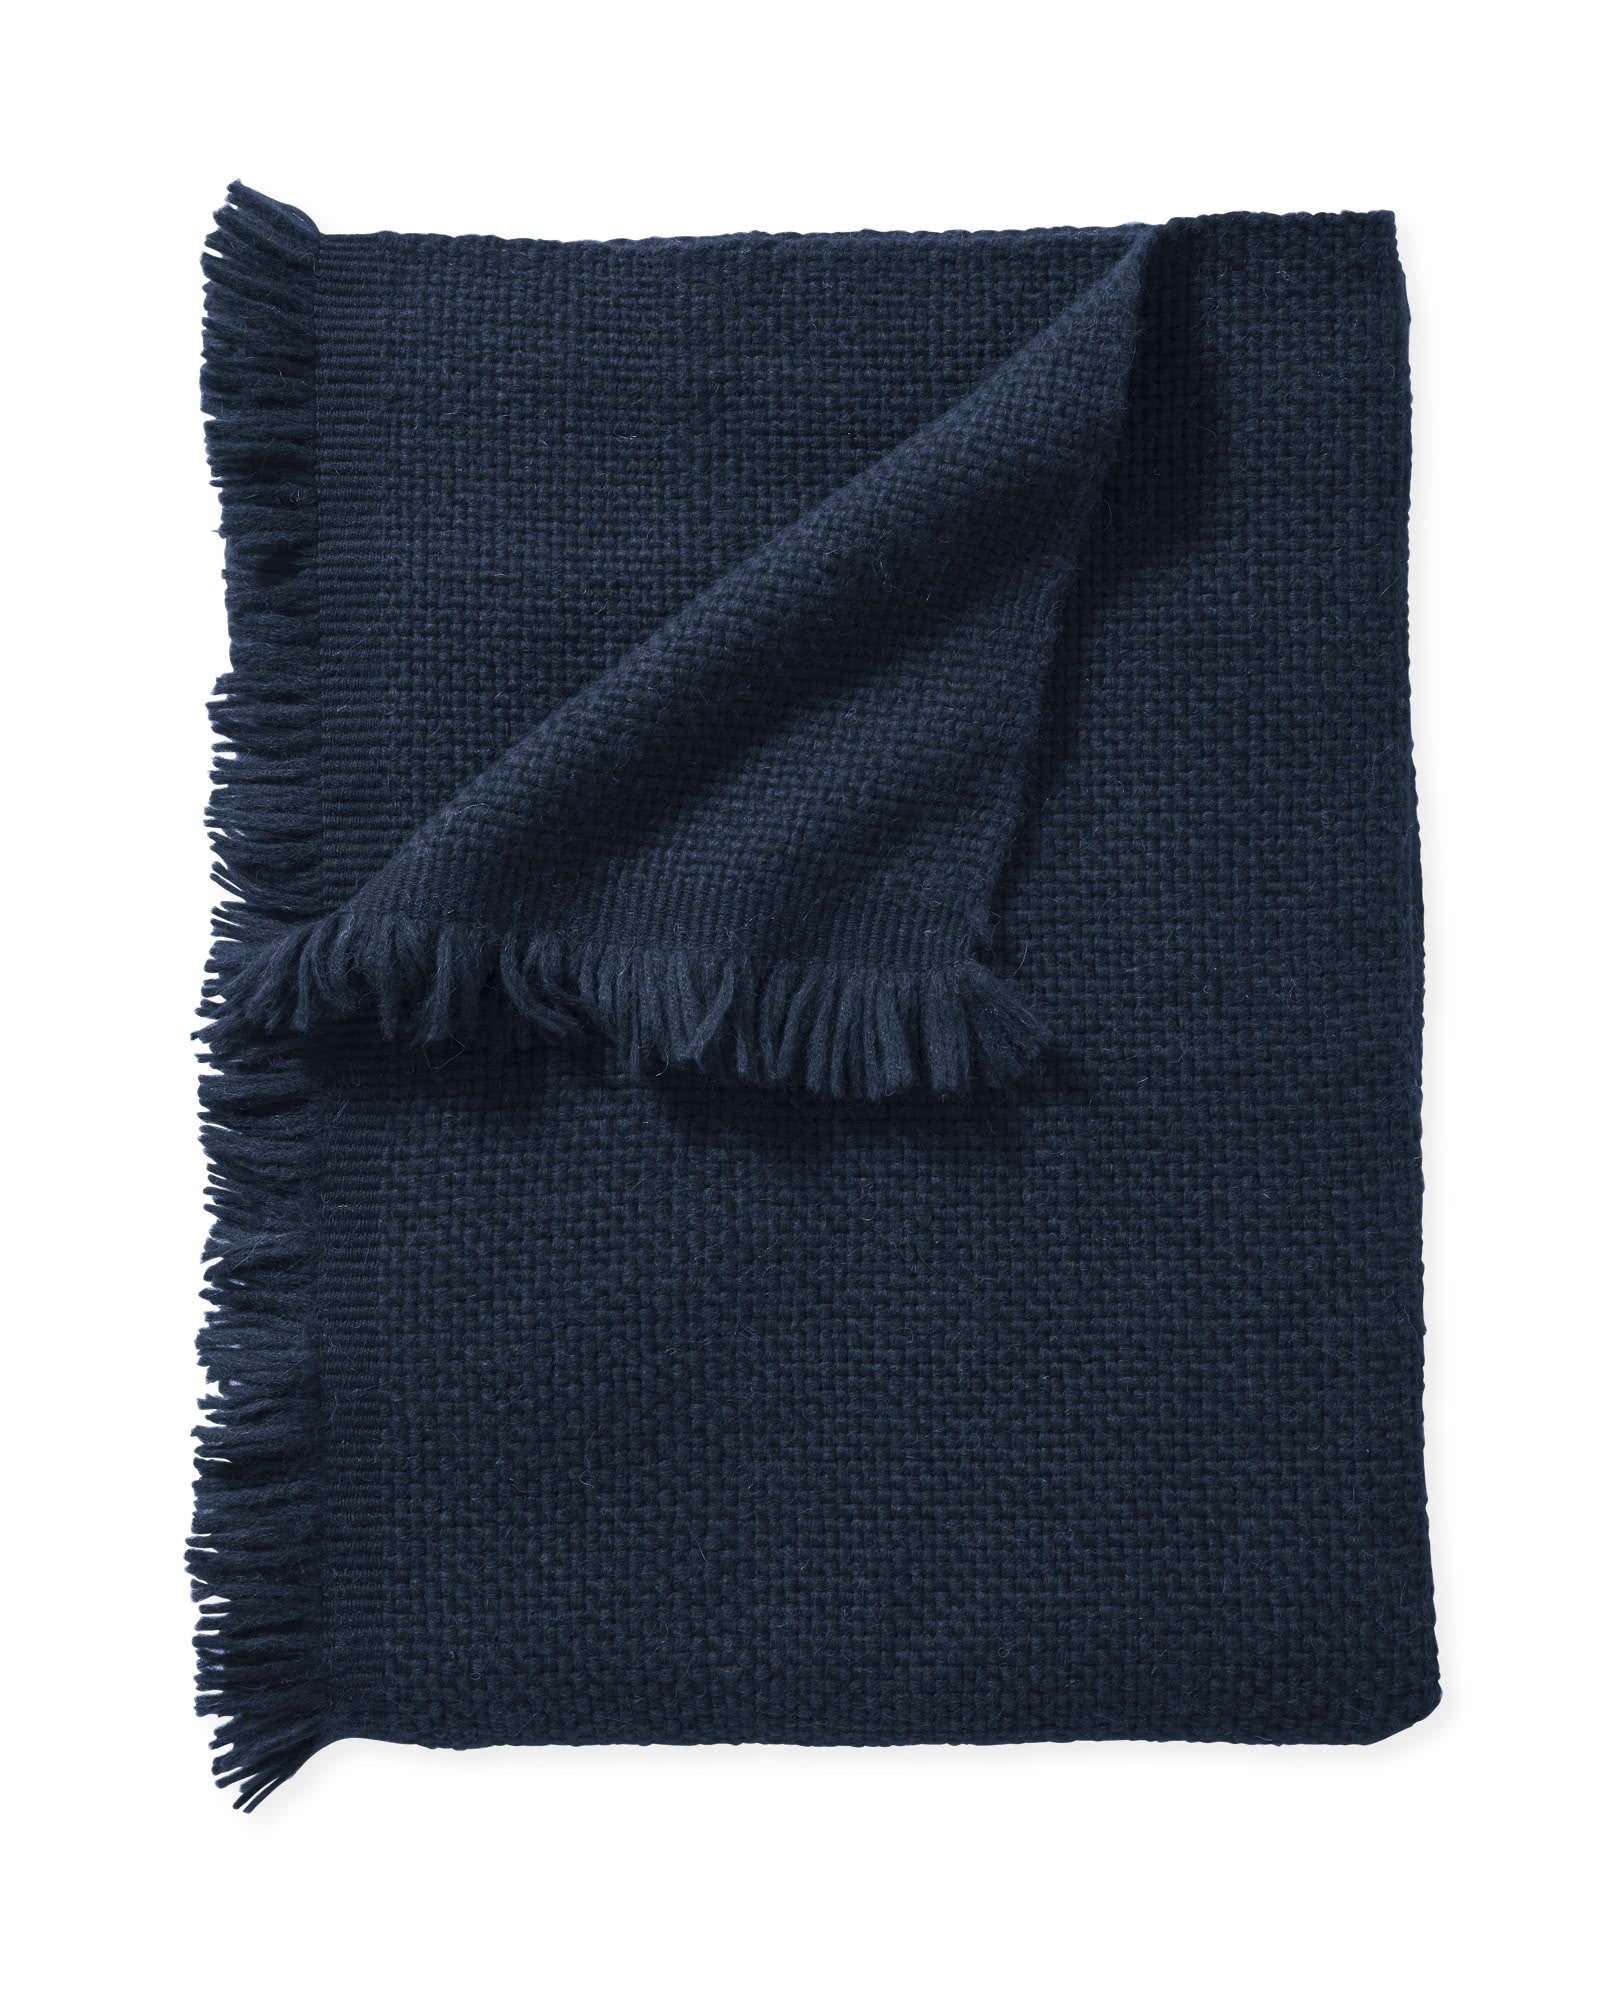 Milo Alpaca Throw, Navy